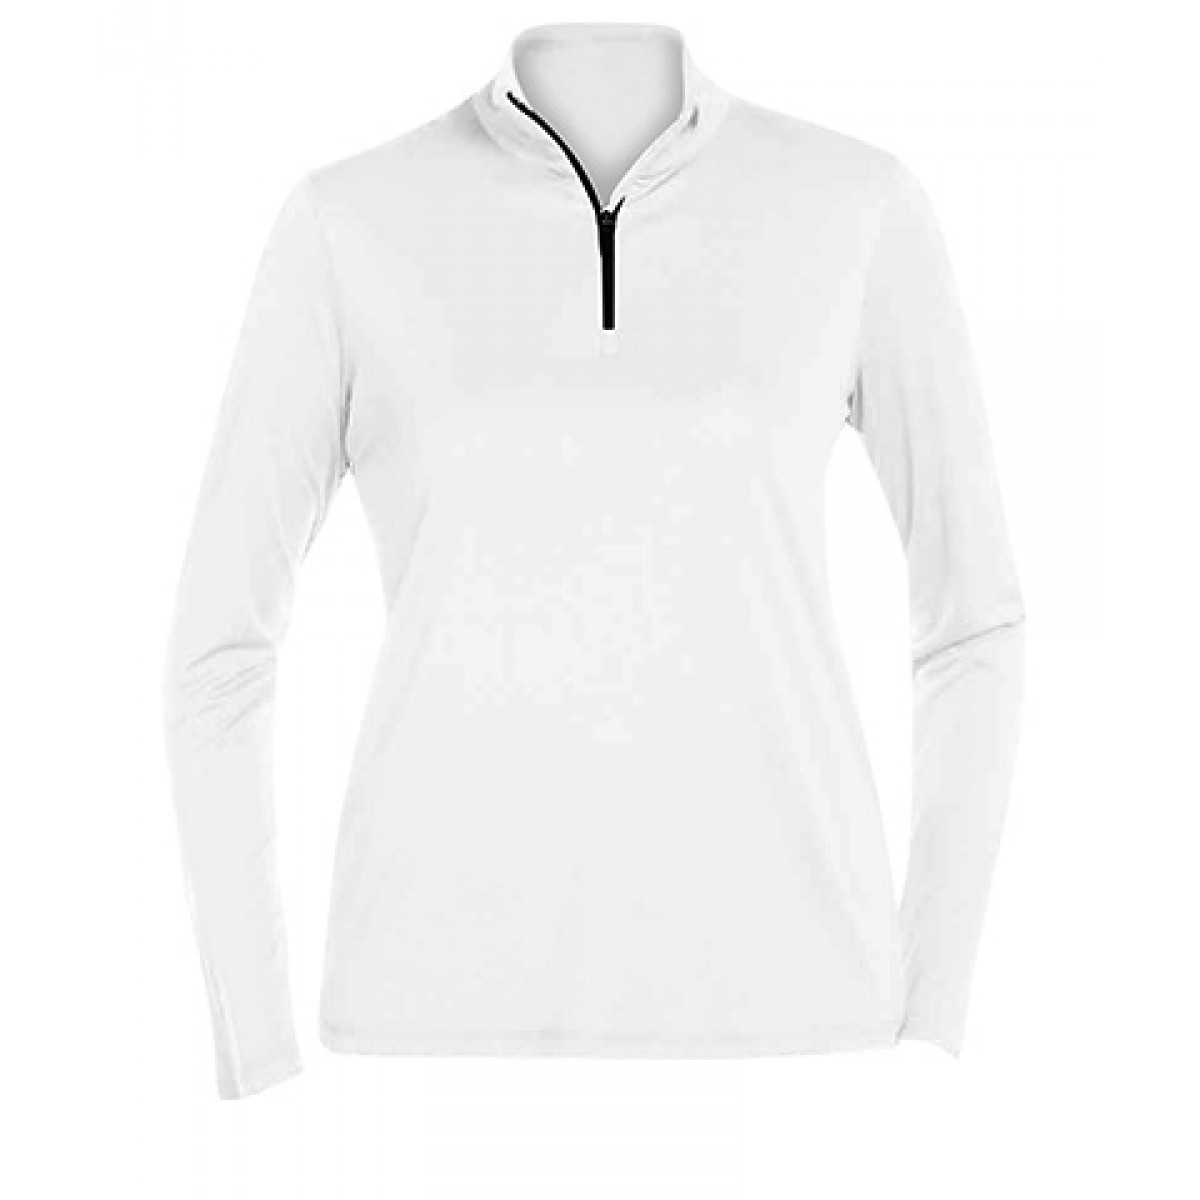 Ladies' Quarter-Zip Lightweight Pullover-White-2XL